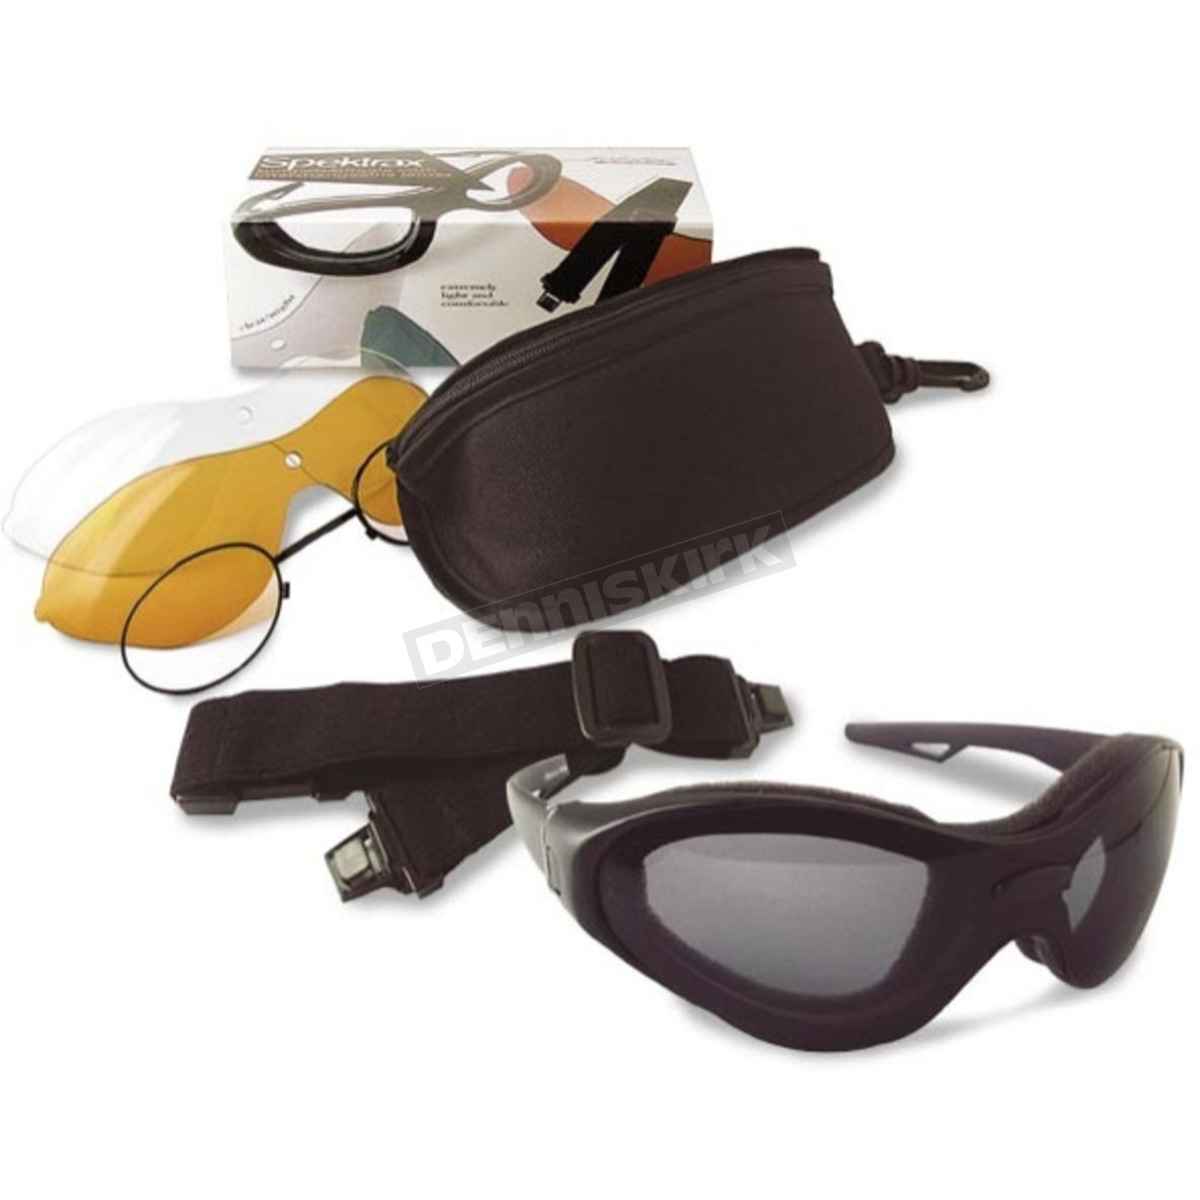 1a6801b8333 Bobster SpekTrax Sunglasses Goggles - BSTT0C1AC Harley Motorcycle ...